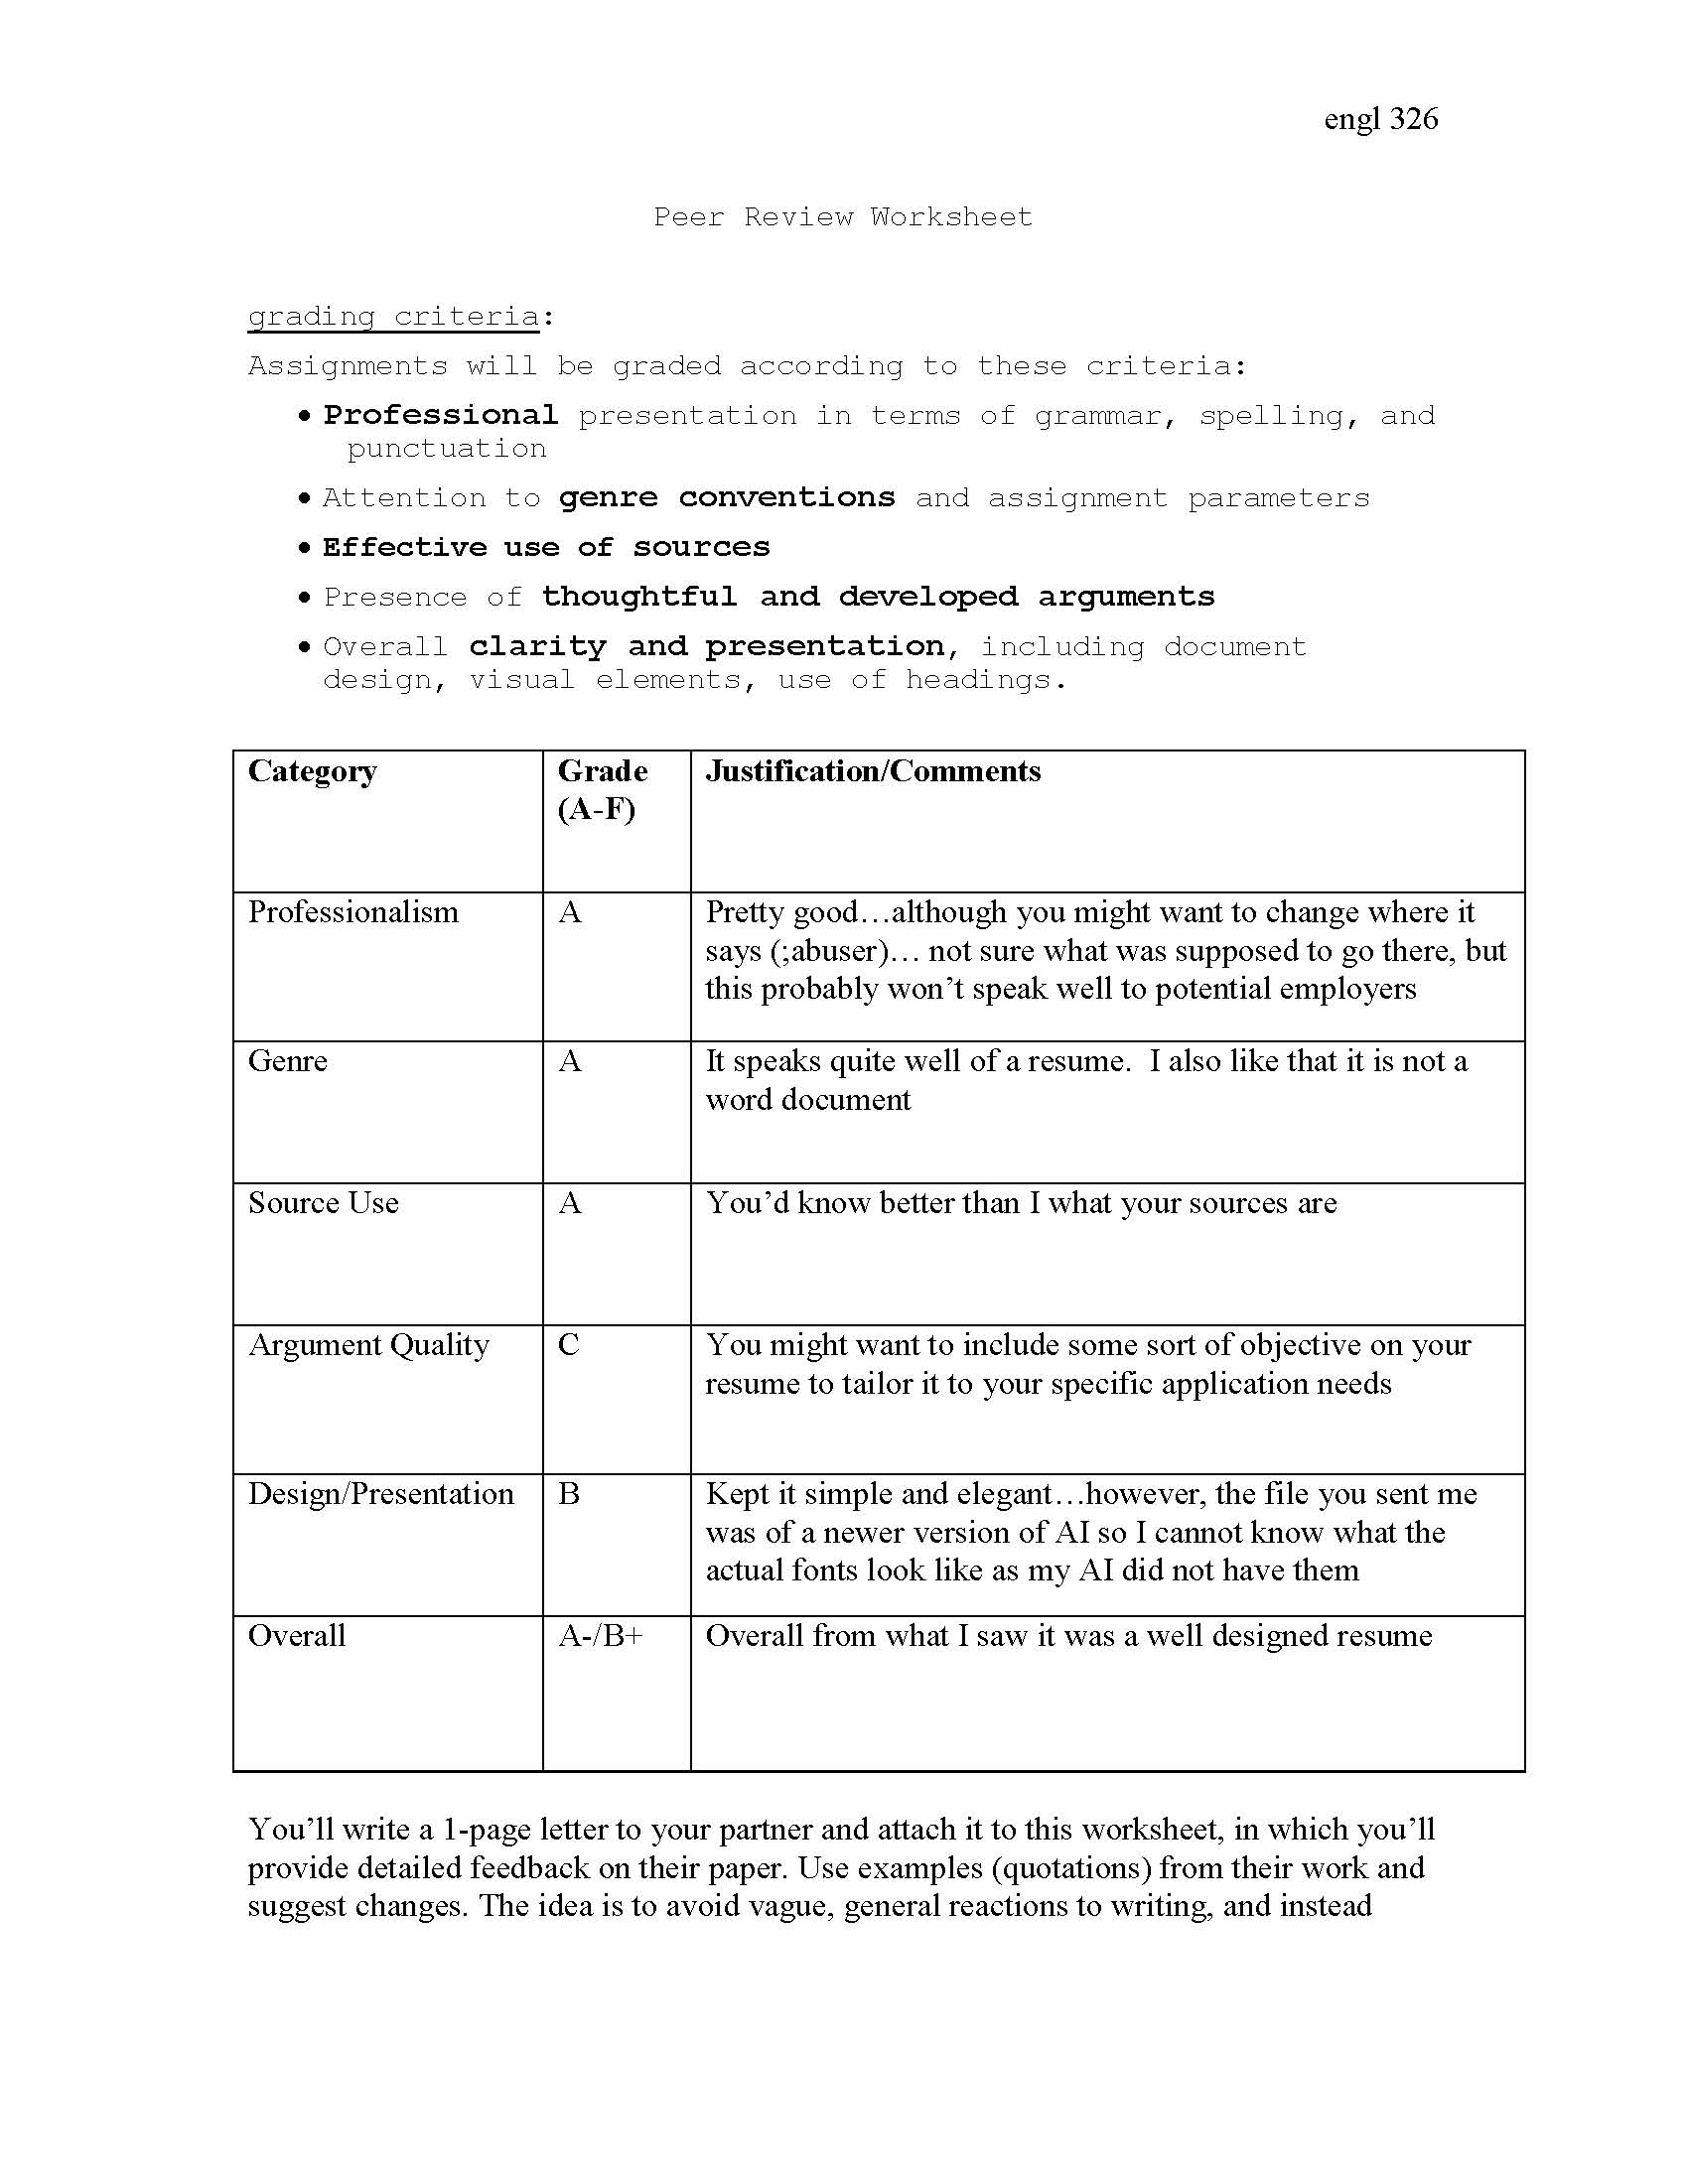 Worksheet Peer Review Worksheet Worksheet Fun Worksheet